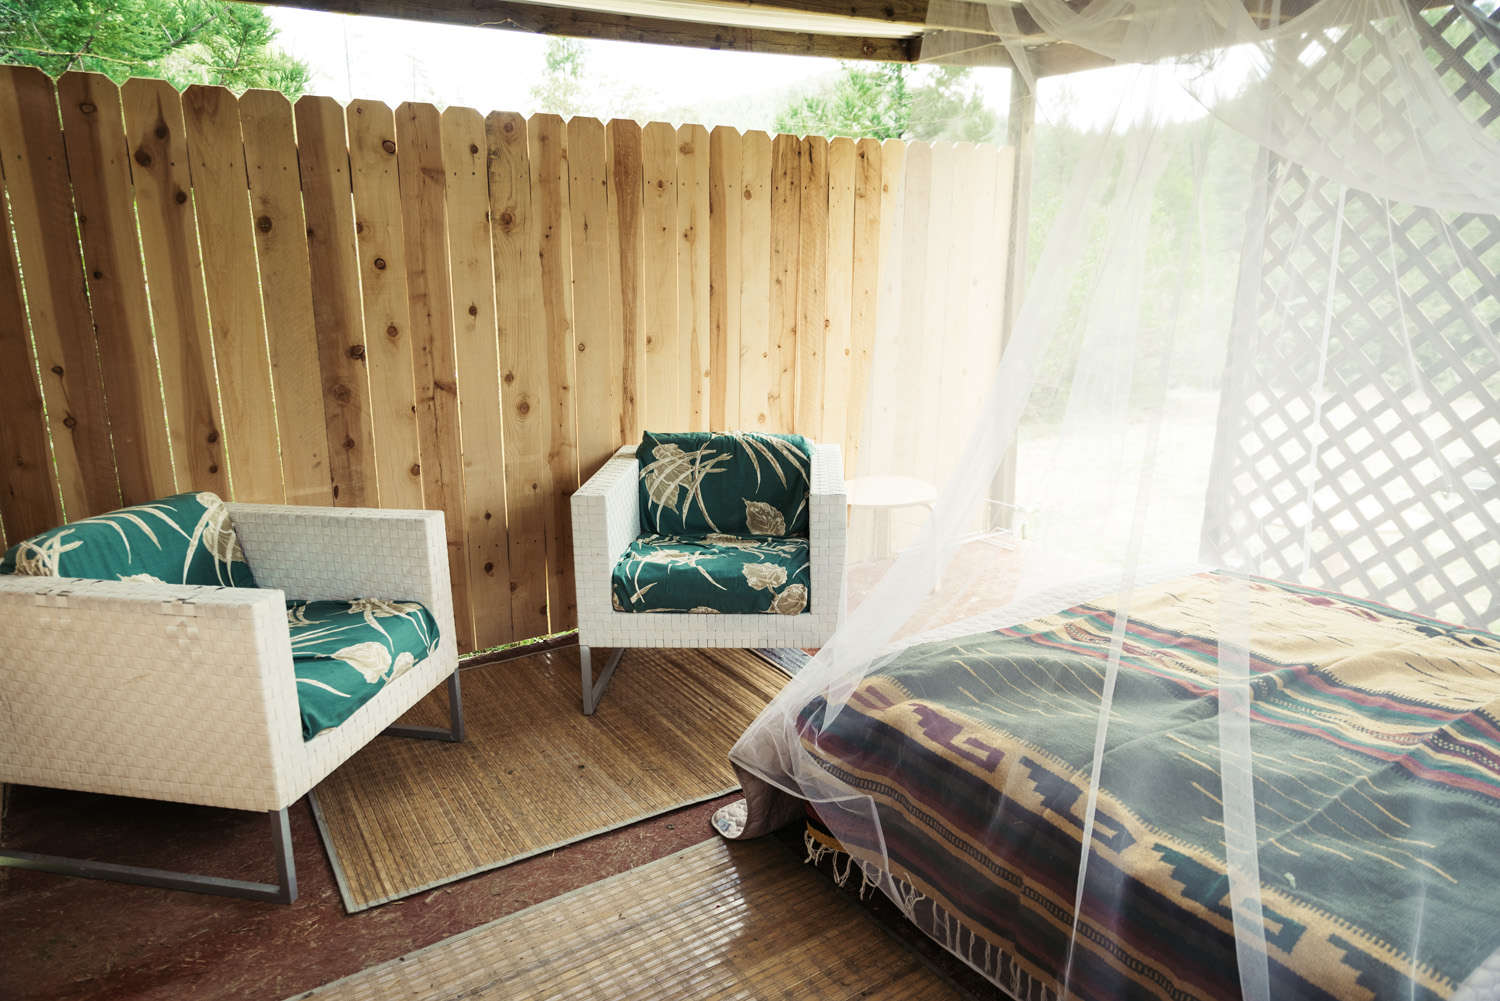 Glampsites - Click here to check out camping upstyled means the great outdoors without the tent. Our Glampsites include queen beds with linens, mosquito netting, proximate parking spots,  porta potties and a hot outdoor shower. Enjoy!